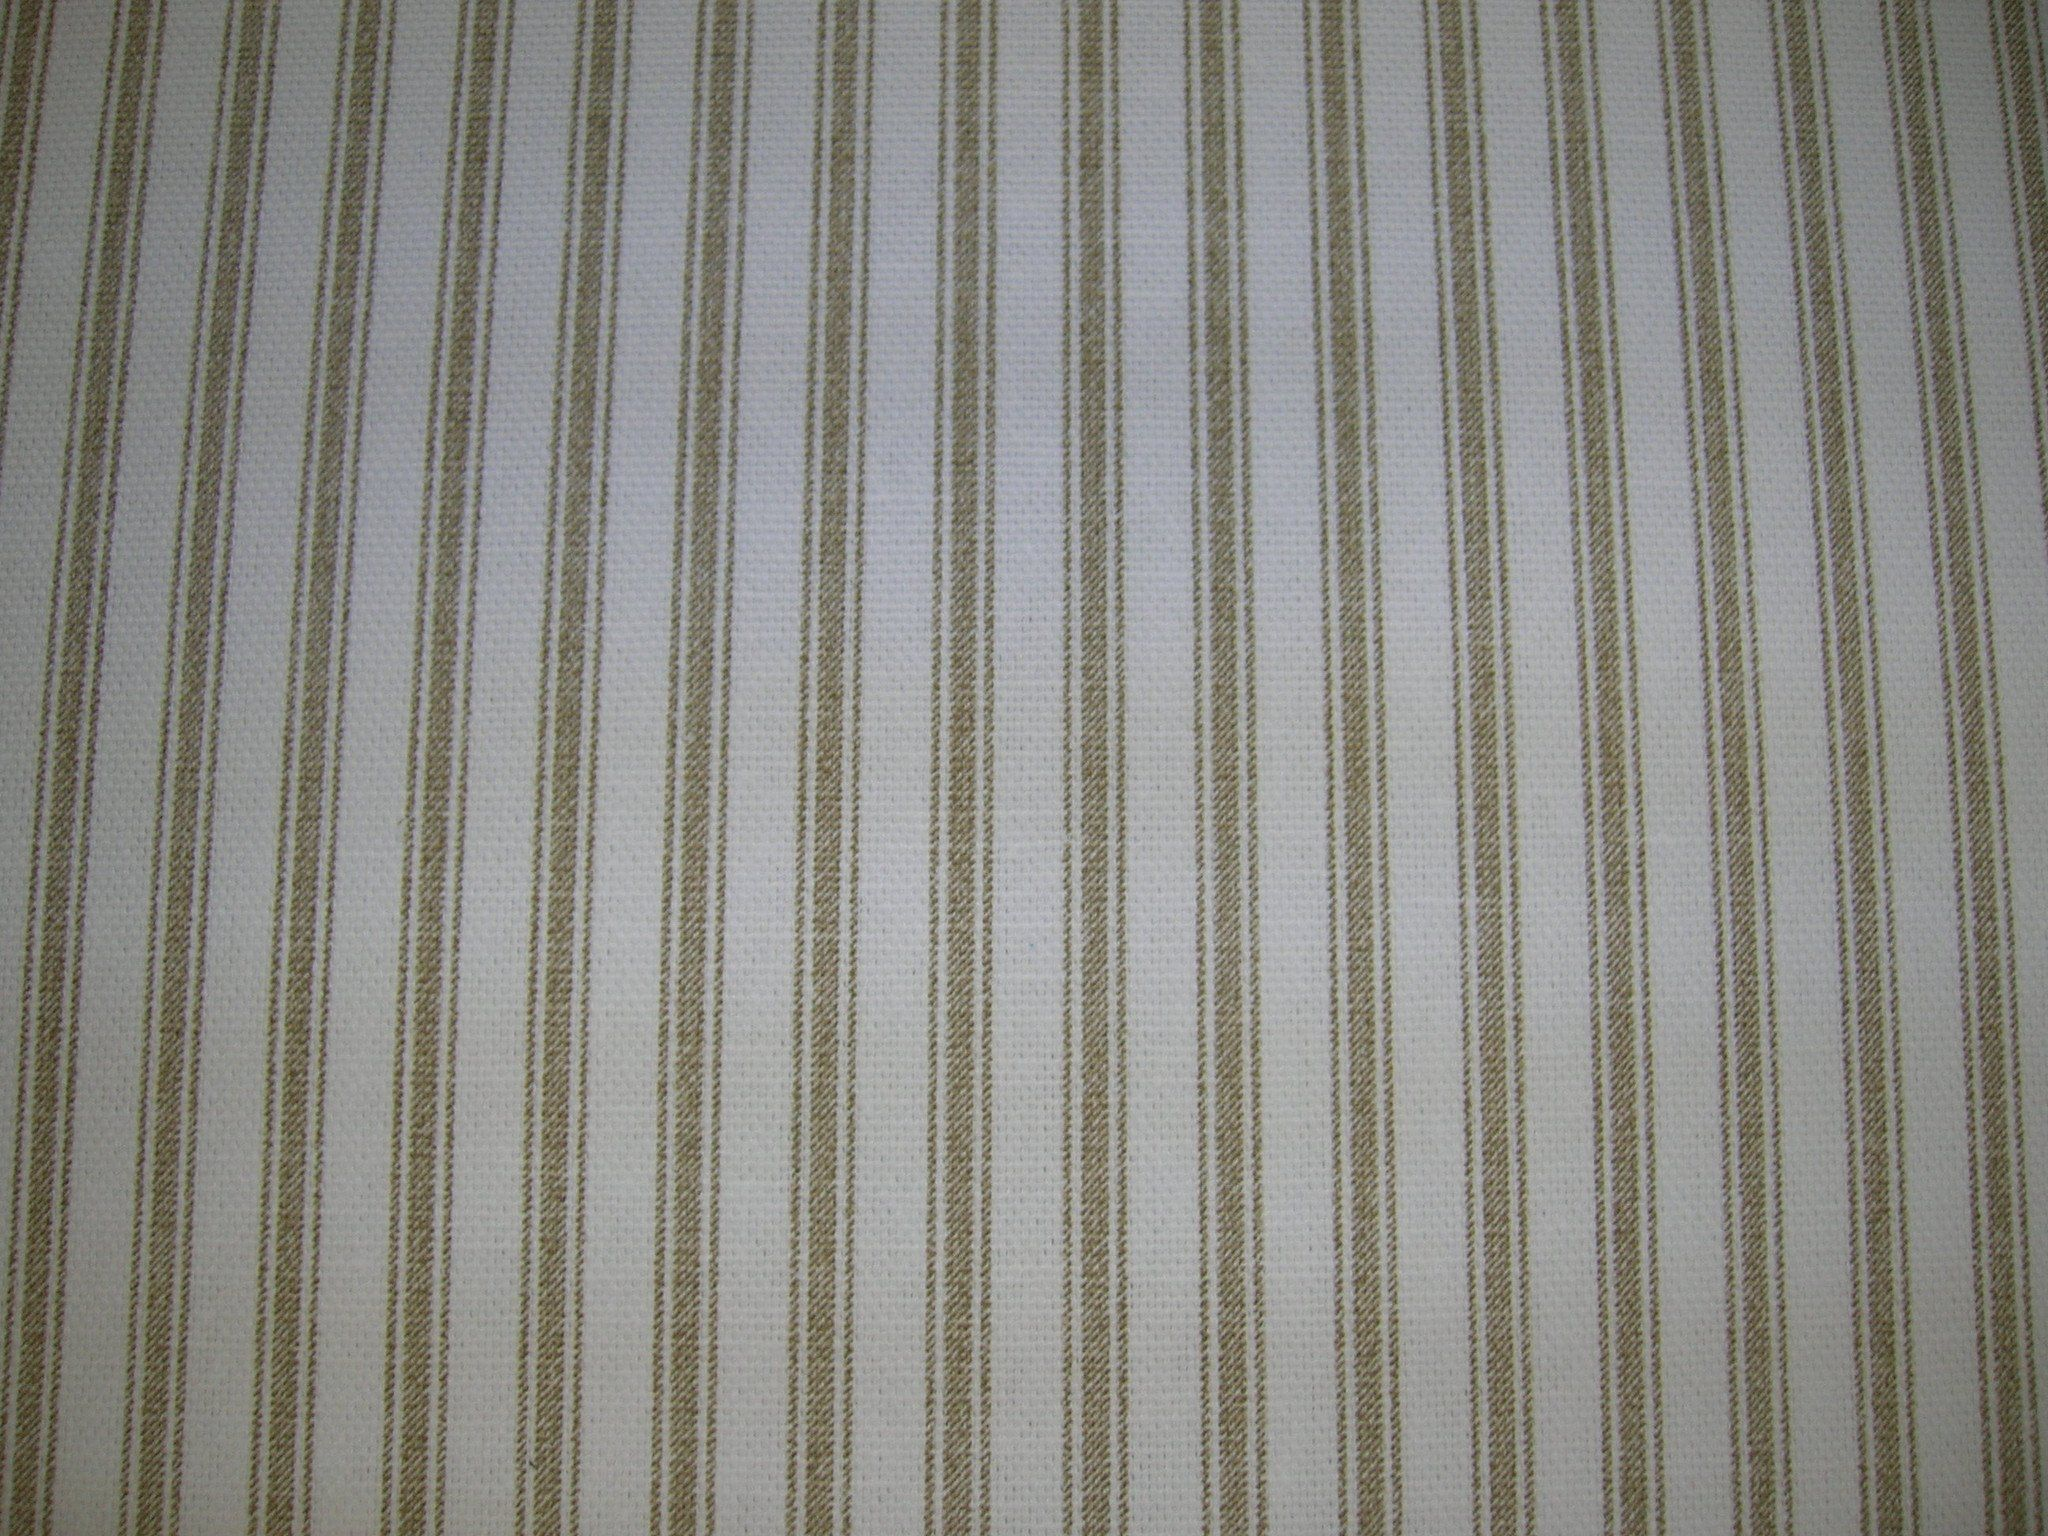 Tan And White Shower Curtain No Liner Needed Made In Usa